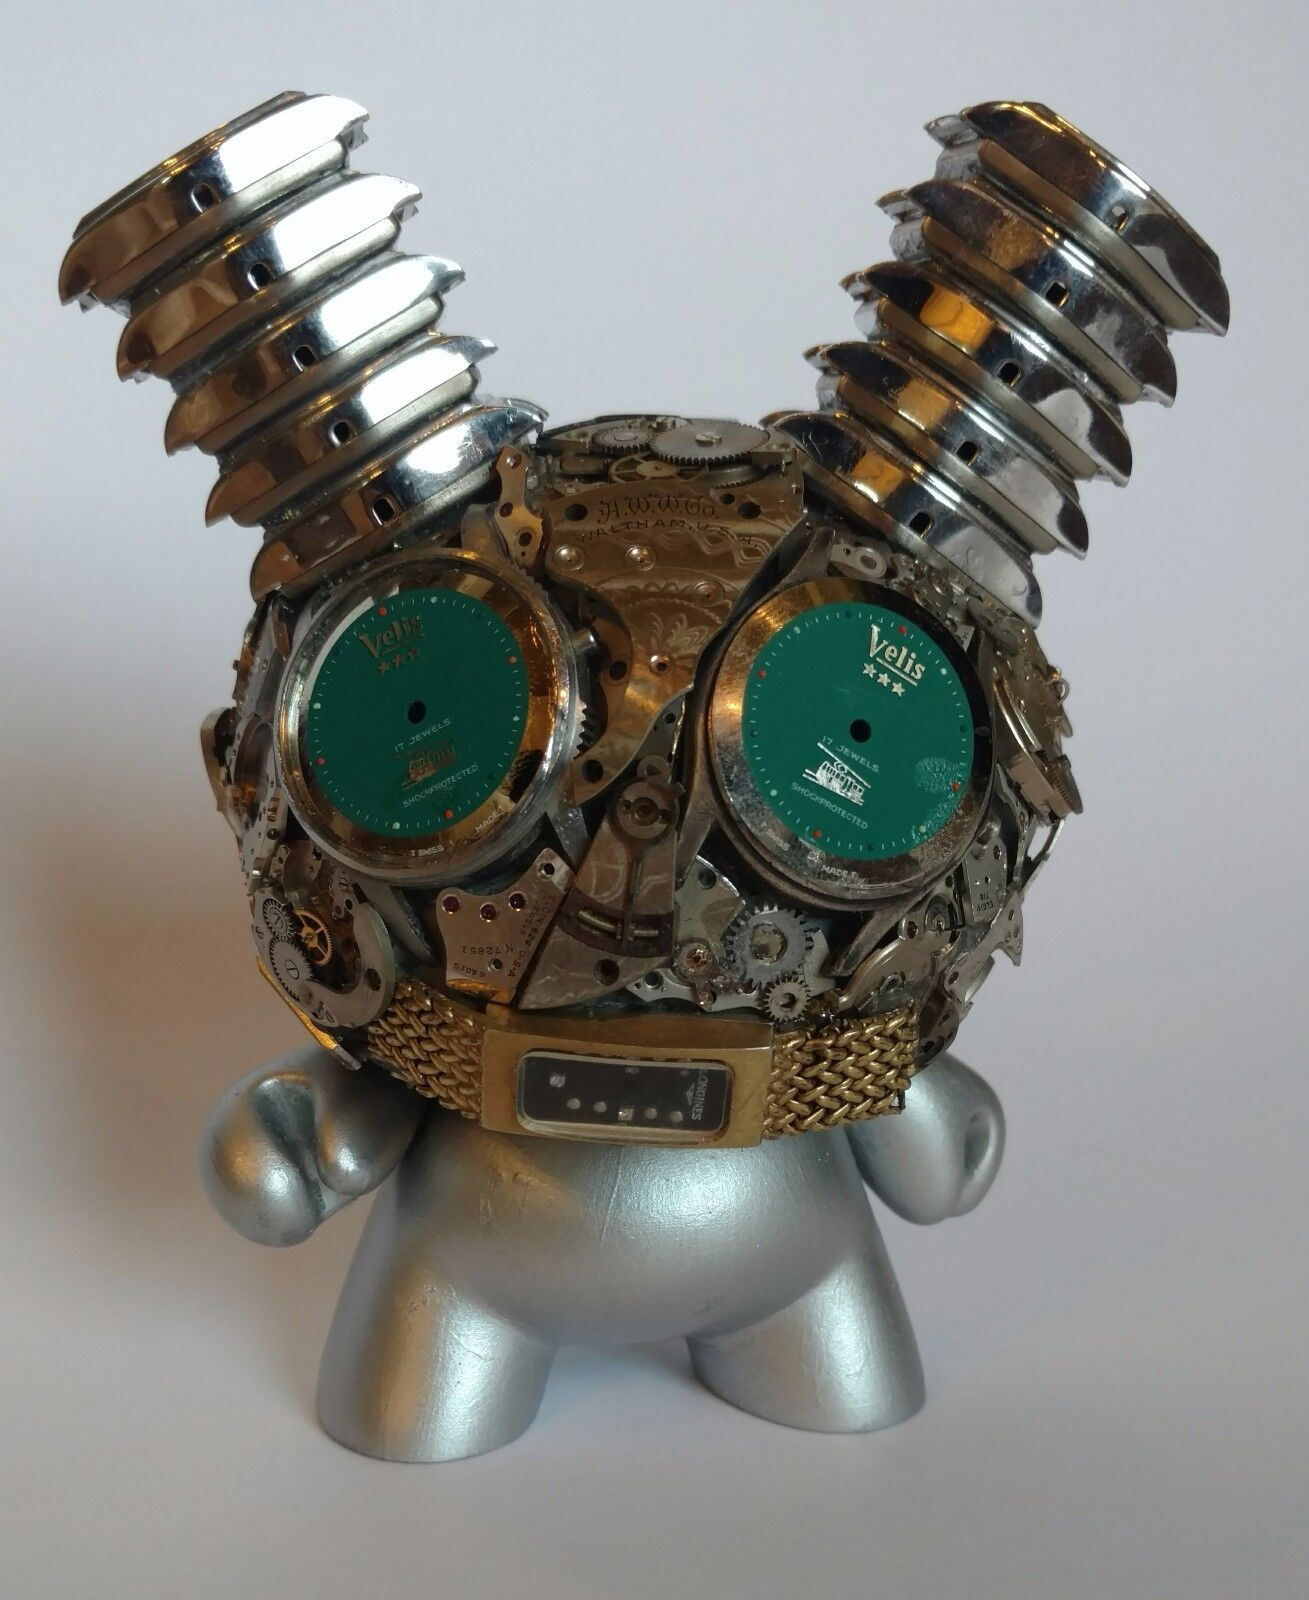 Kidrobot Exquisite Steampunk Watch Parts Dunny Series Blau EYES Dan Tanenbaum